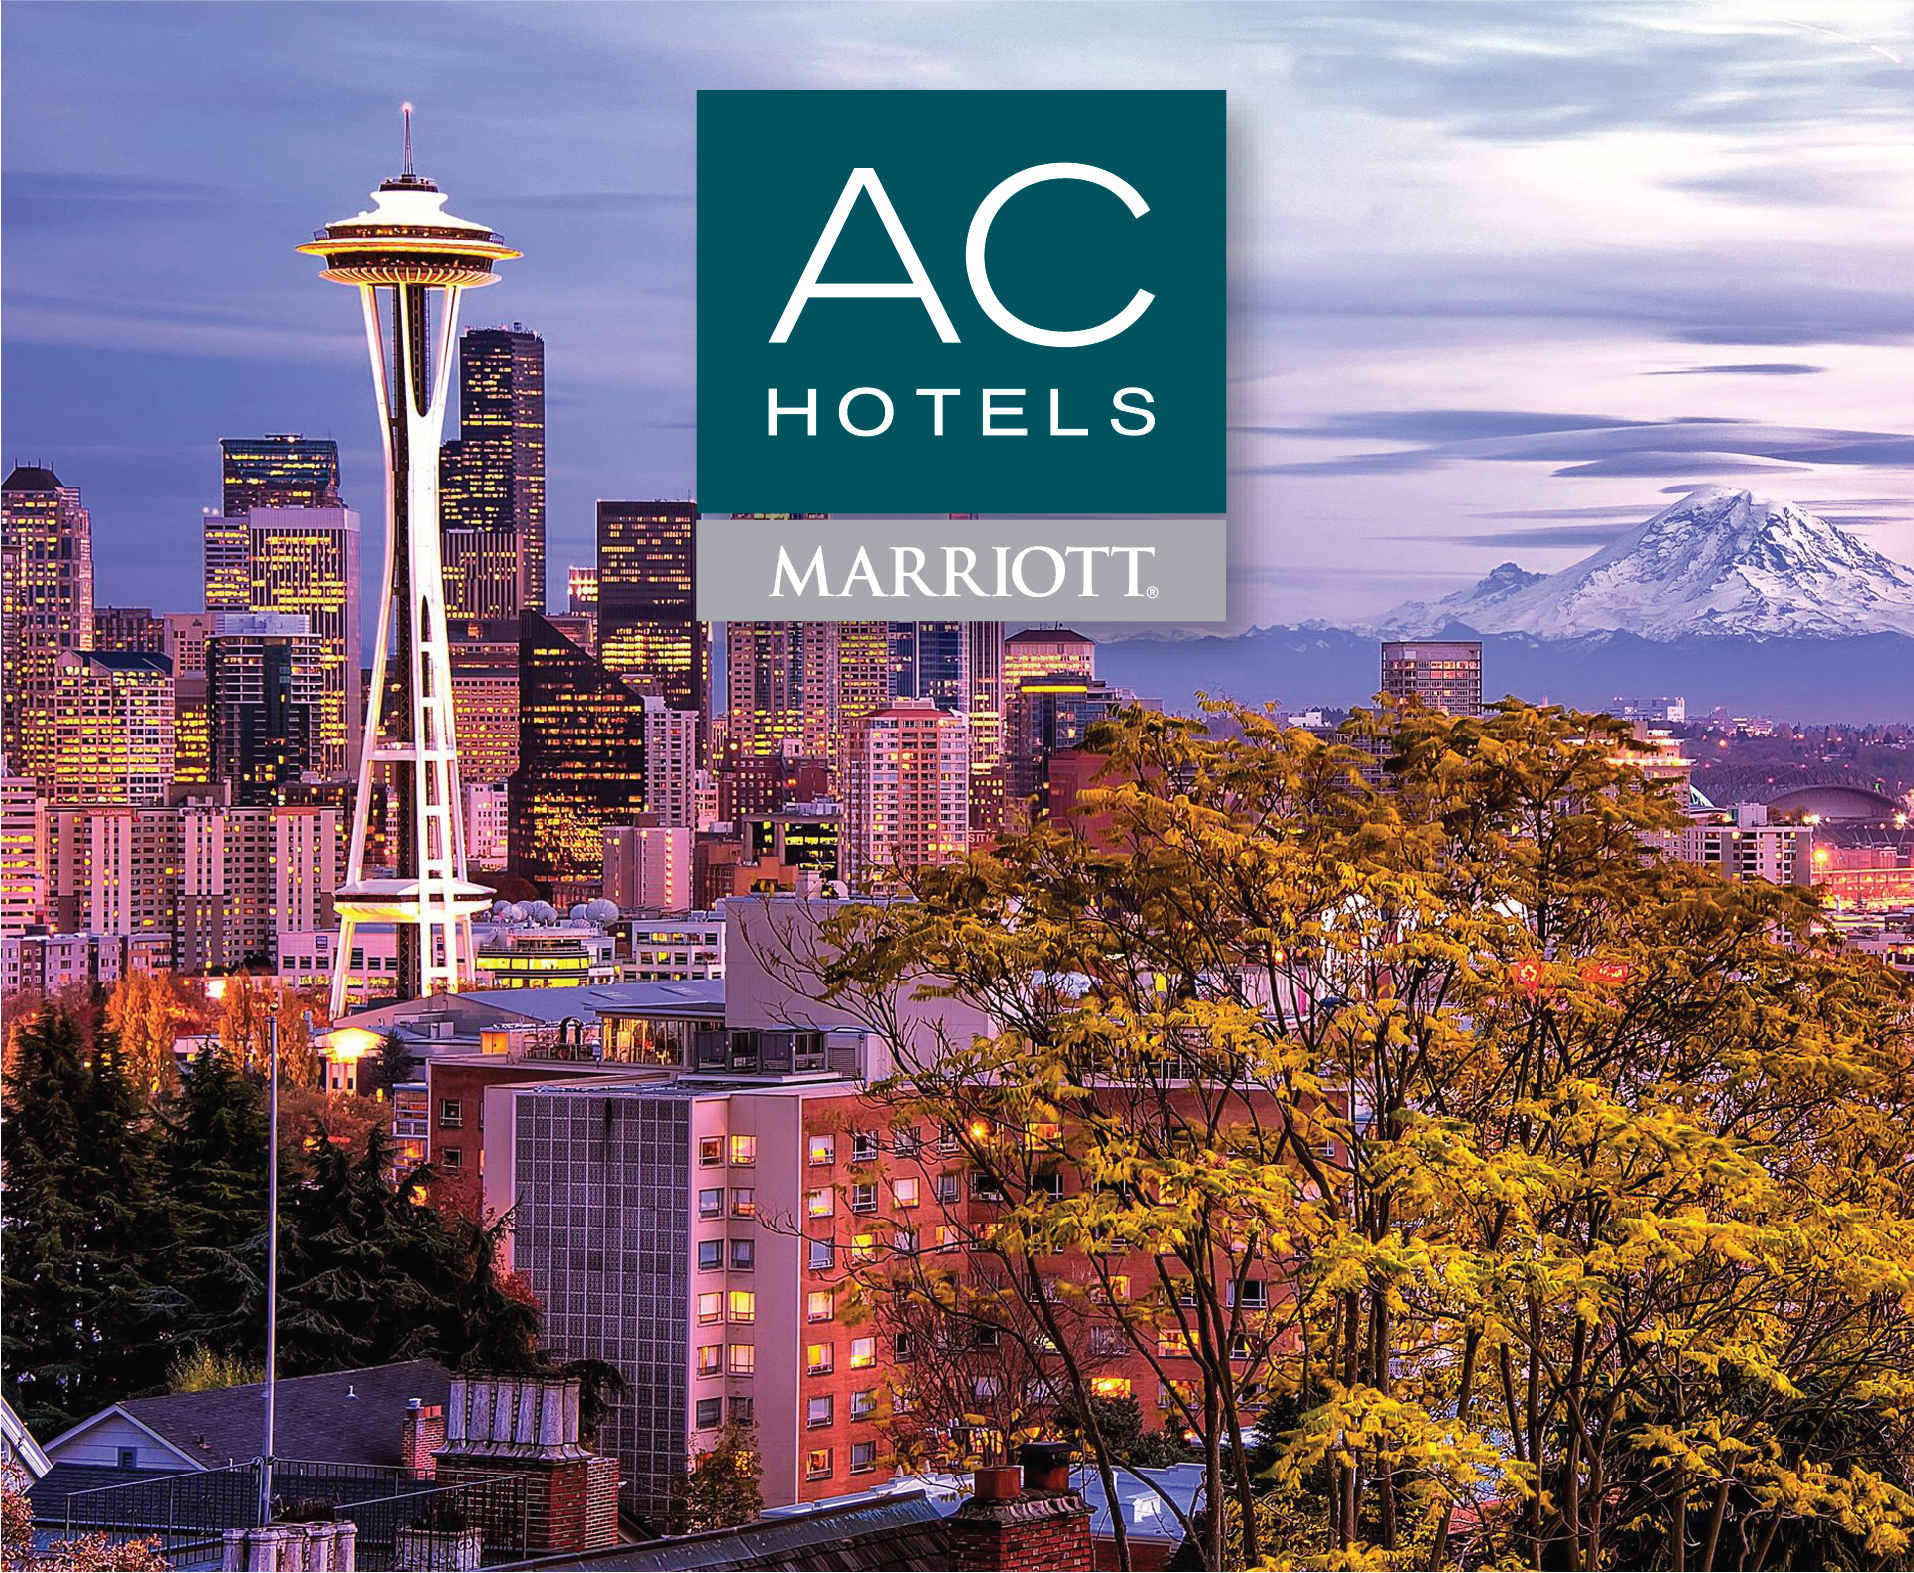 AC Hotel Seattle DowntownSeattle, WA - High Street has partnered with White Peterman Properties and William Harris Investors to develop a 200-key AC Hotel by Marriott in Downtown Seattle. Located in the heart of the 10+ million square feet of Amazon offices, the development site sits on Yale Avenue at the intersection of the South Lake Union and Denny Triangle neighborhoods.AC Hotels are designed to attract the next generation design-conscious business traveler who seeks a sleek, modern hotel with unique European touches. With hotels across Europe, North America, and South America, AC Hotels by Marriott properties are located in destination, downtown, and lifestyle centers.